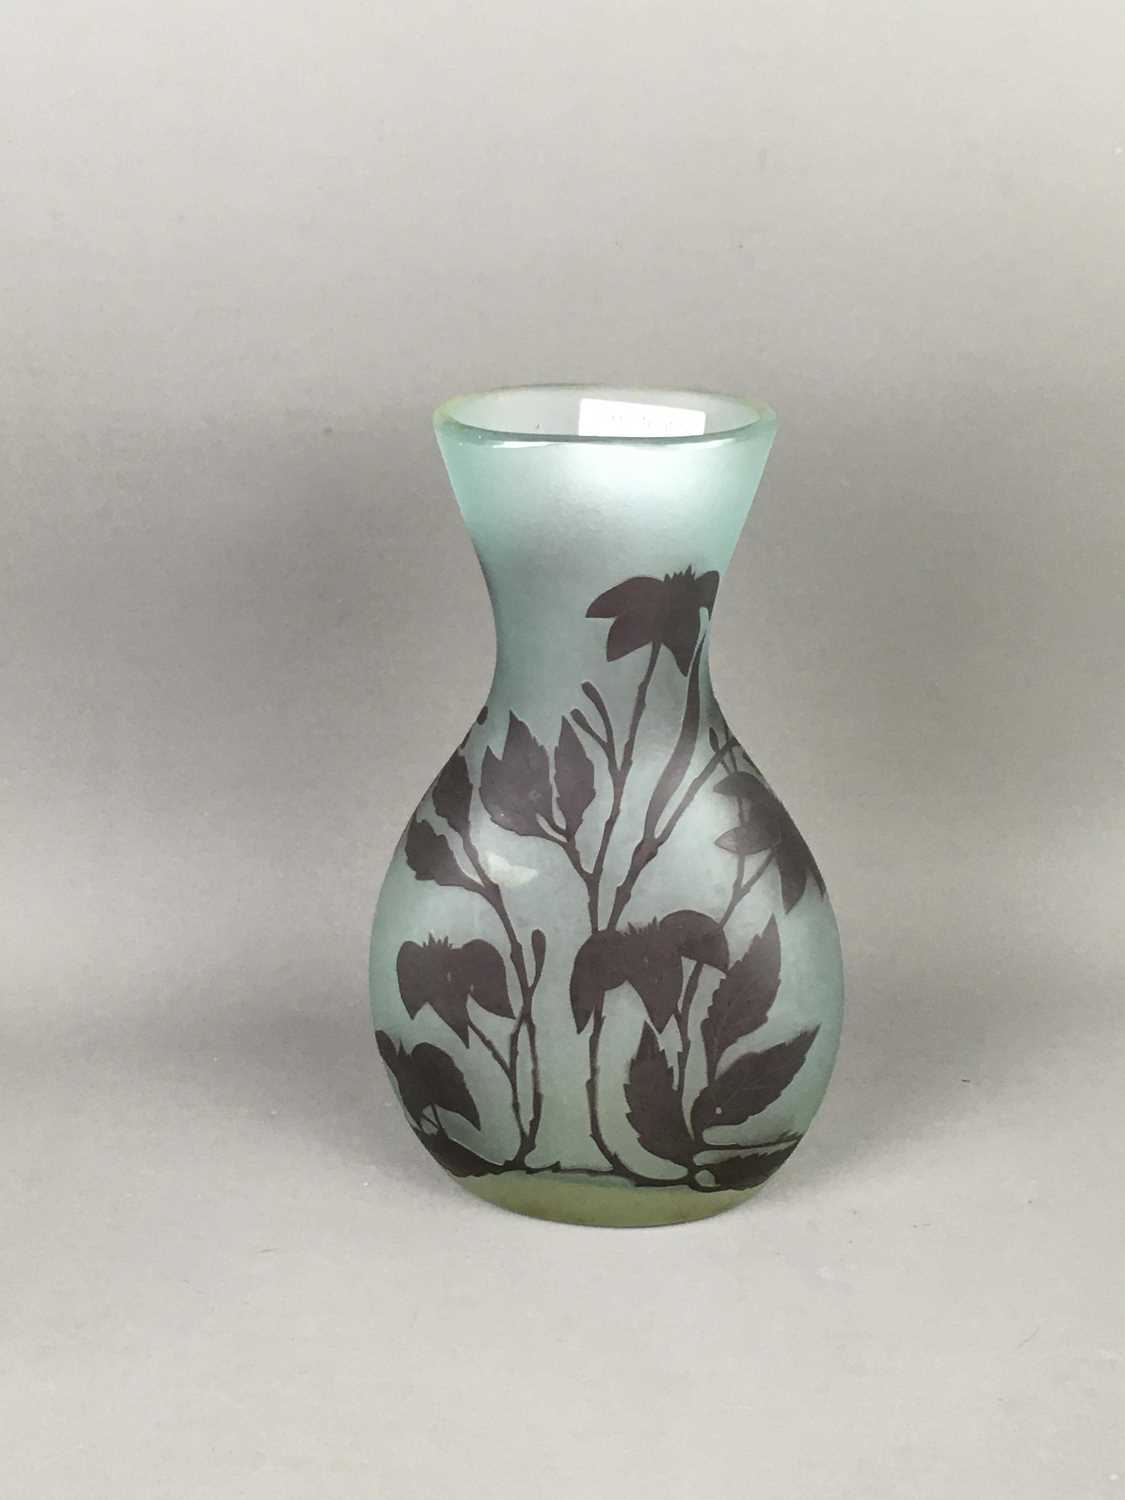 Lot 491 - A CAMEO GLASS VASE